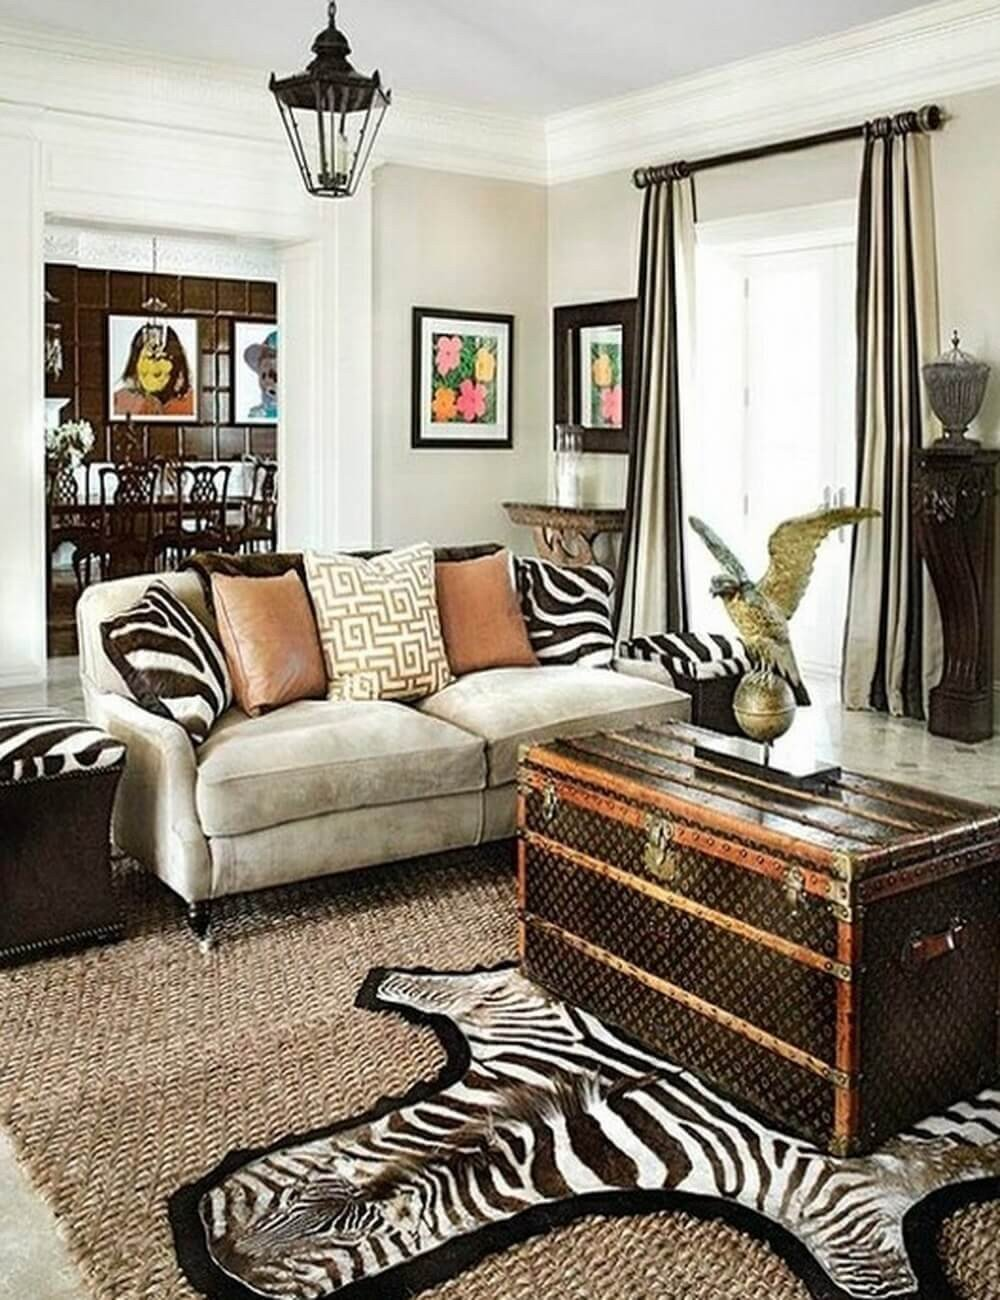 Zebra Decor for Living Room Inspirational Make Your Rooms Look Fierce and Wild by Using Zebra Print